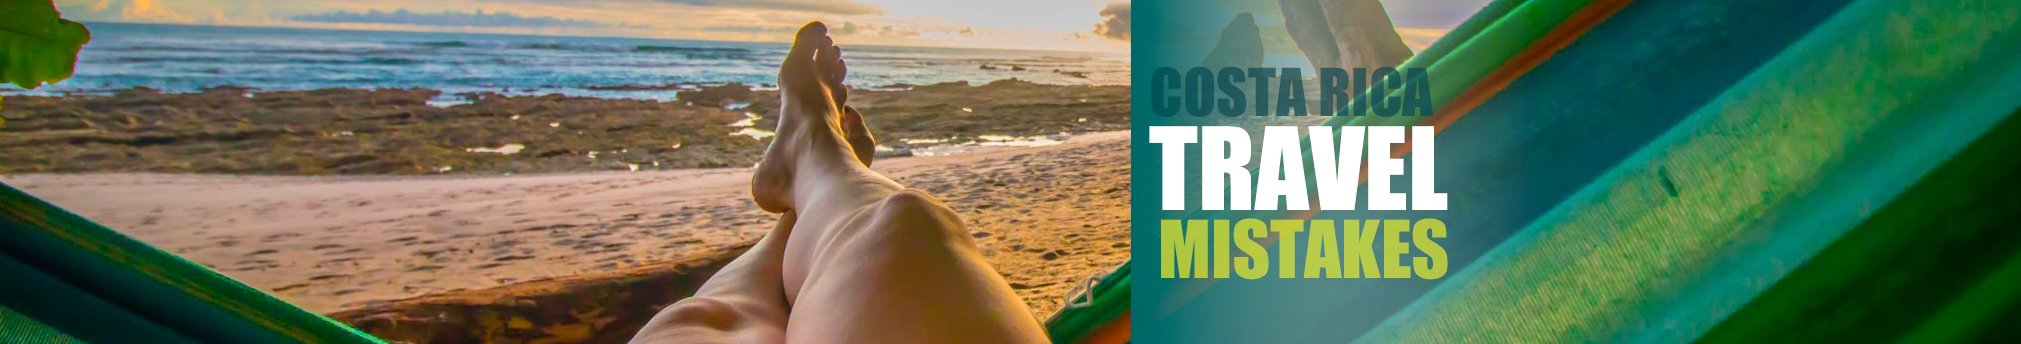 Most Common Costa Rica Travel Mistakes